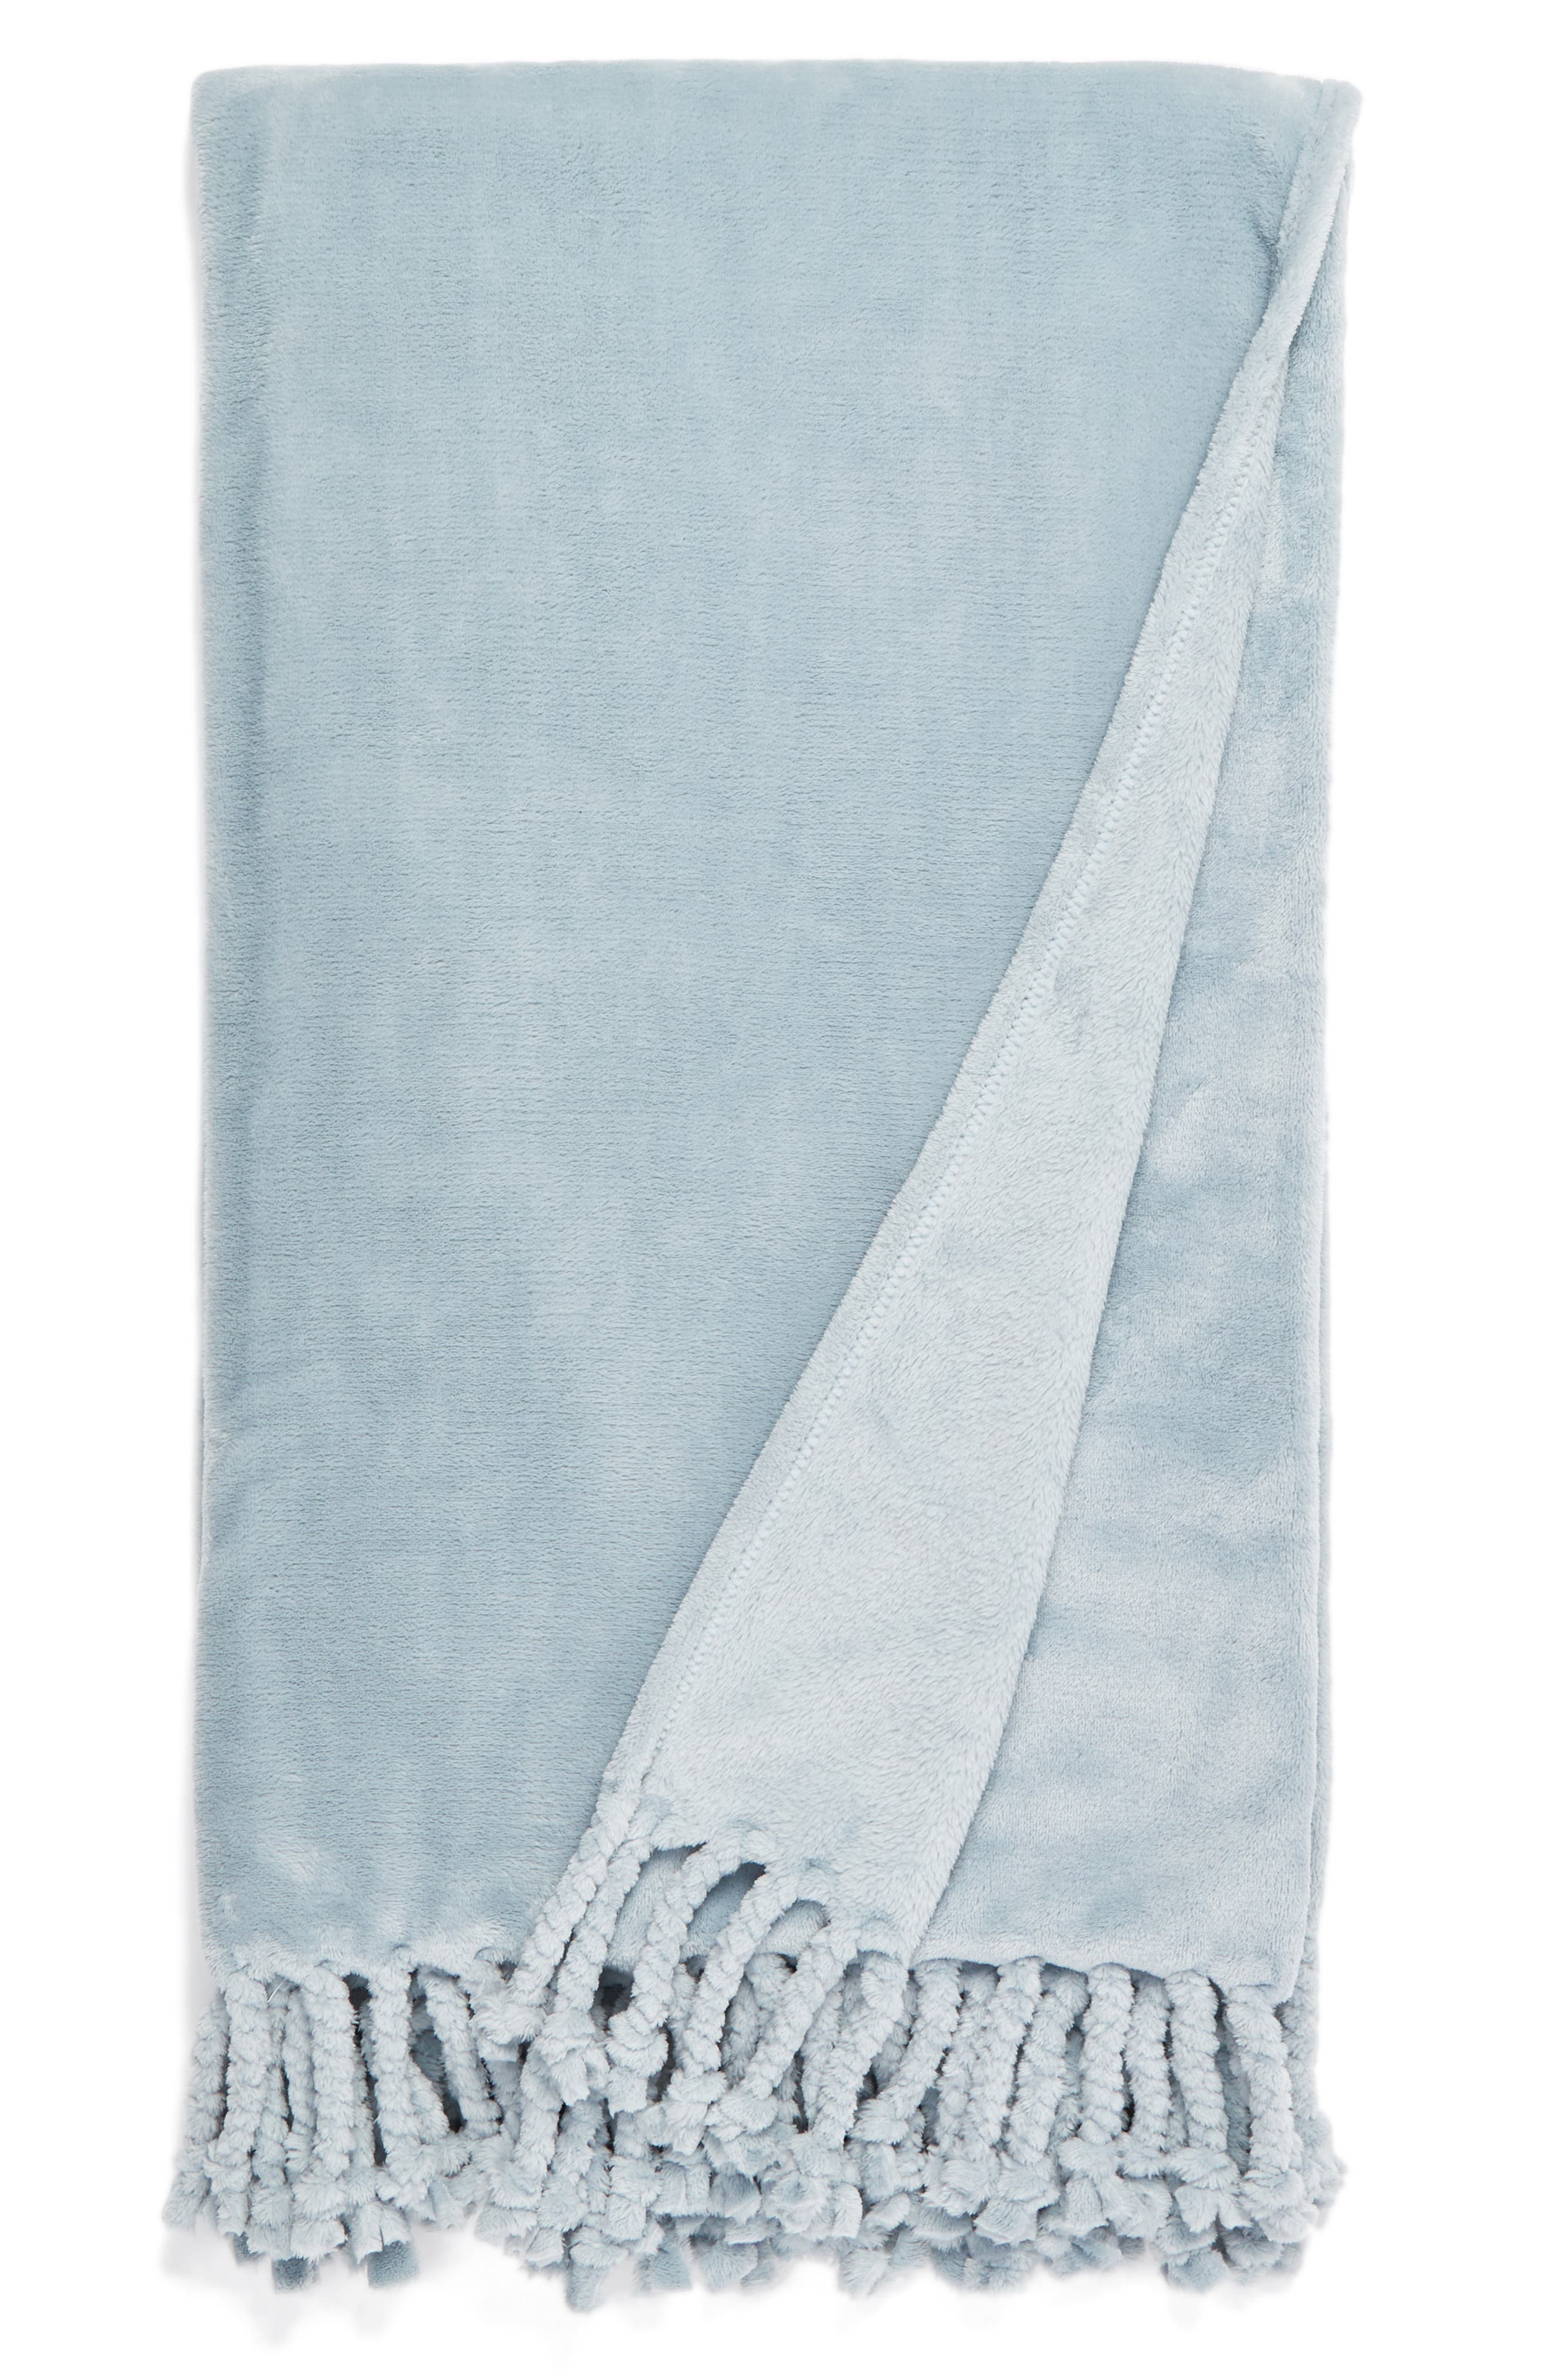 Main Image - Kennebunk Home 'Bliss' Plush Throw